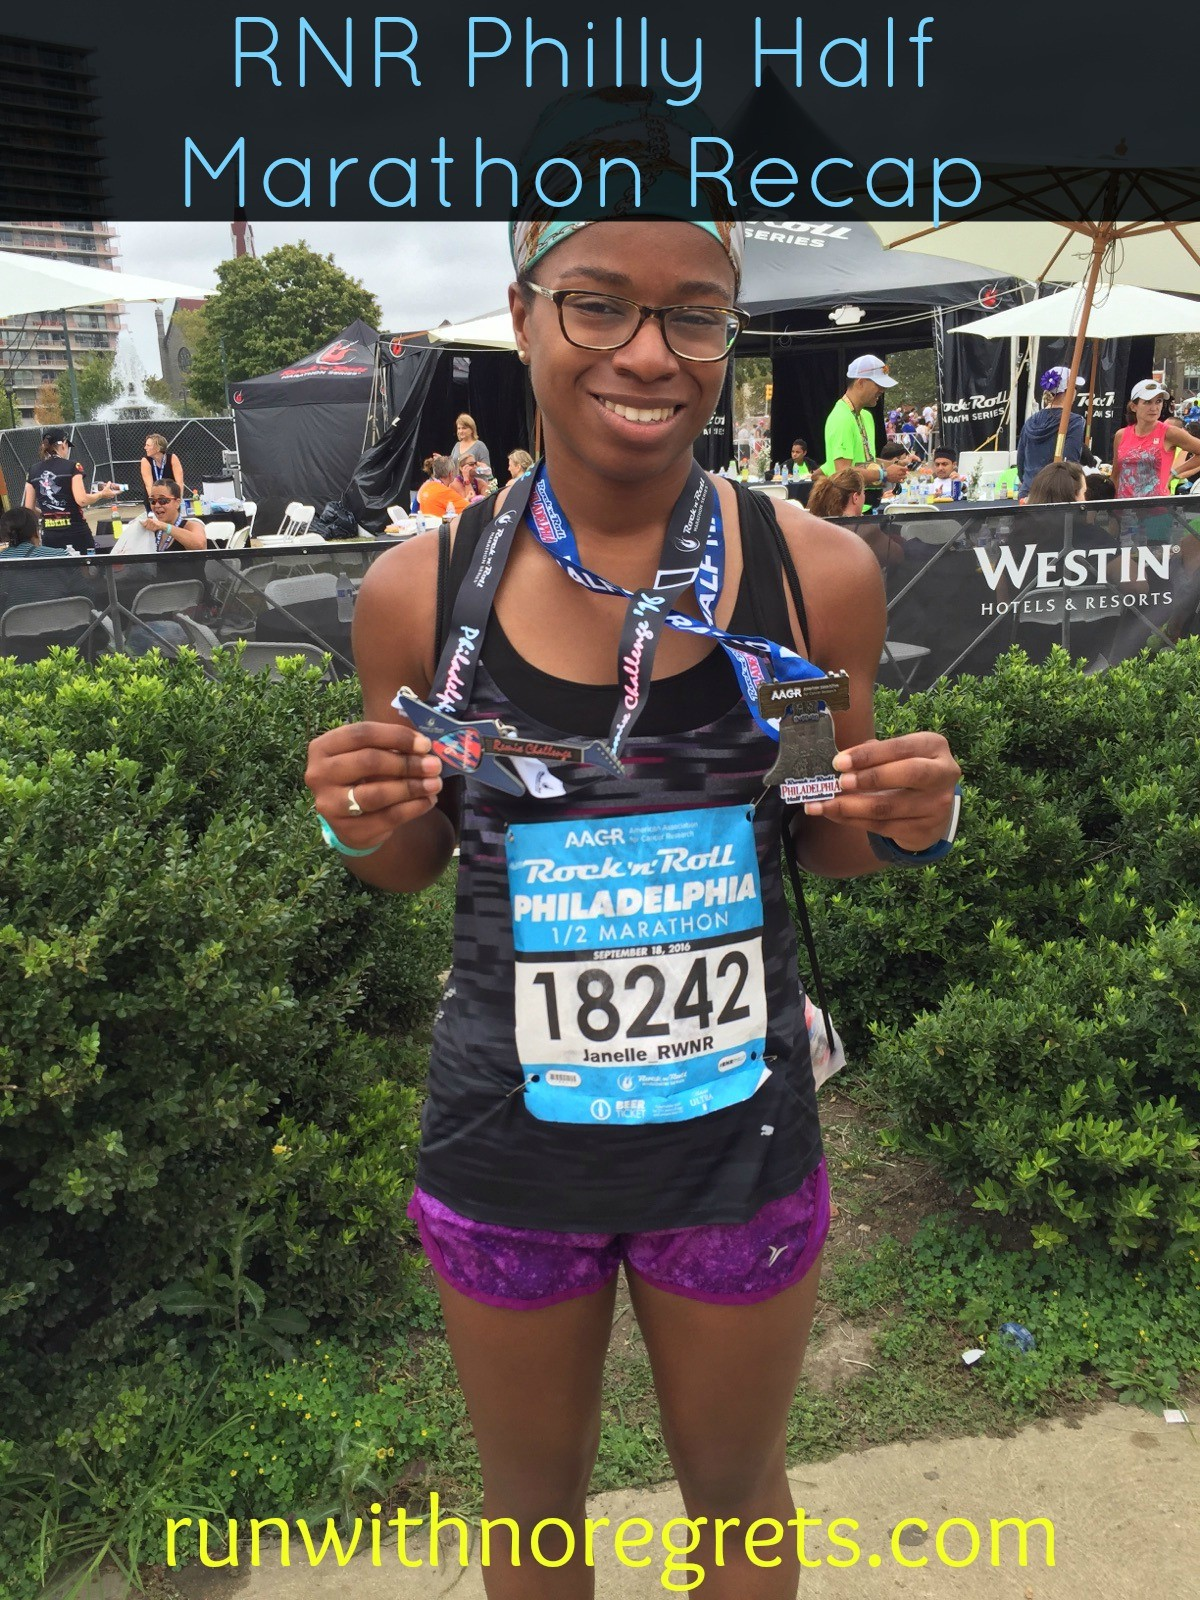 In September 2016 I ran my 9th half marathon - the Rock 'N Roll Philadelphia Half! Check out my recap and more running at runwithnoregrets.com!